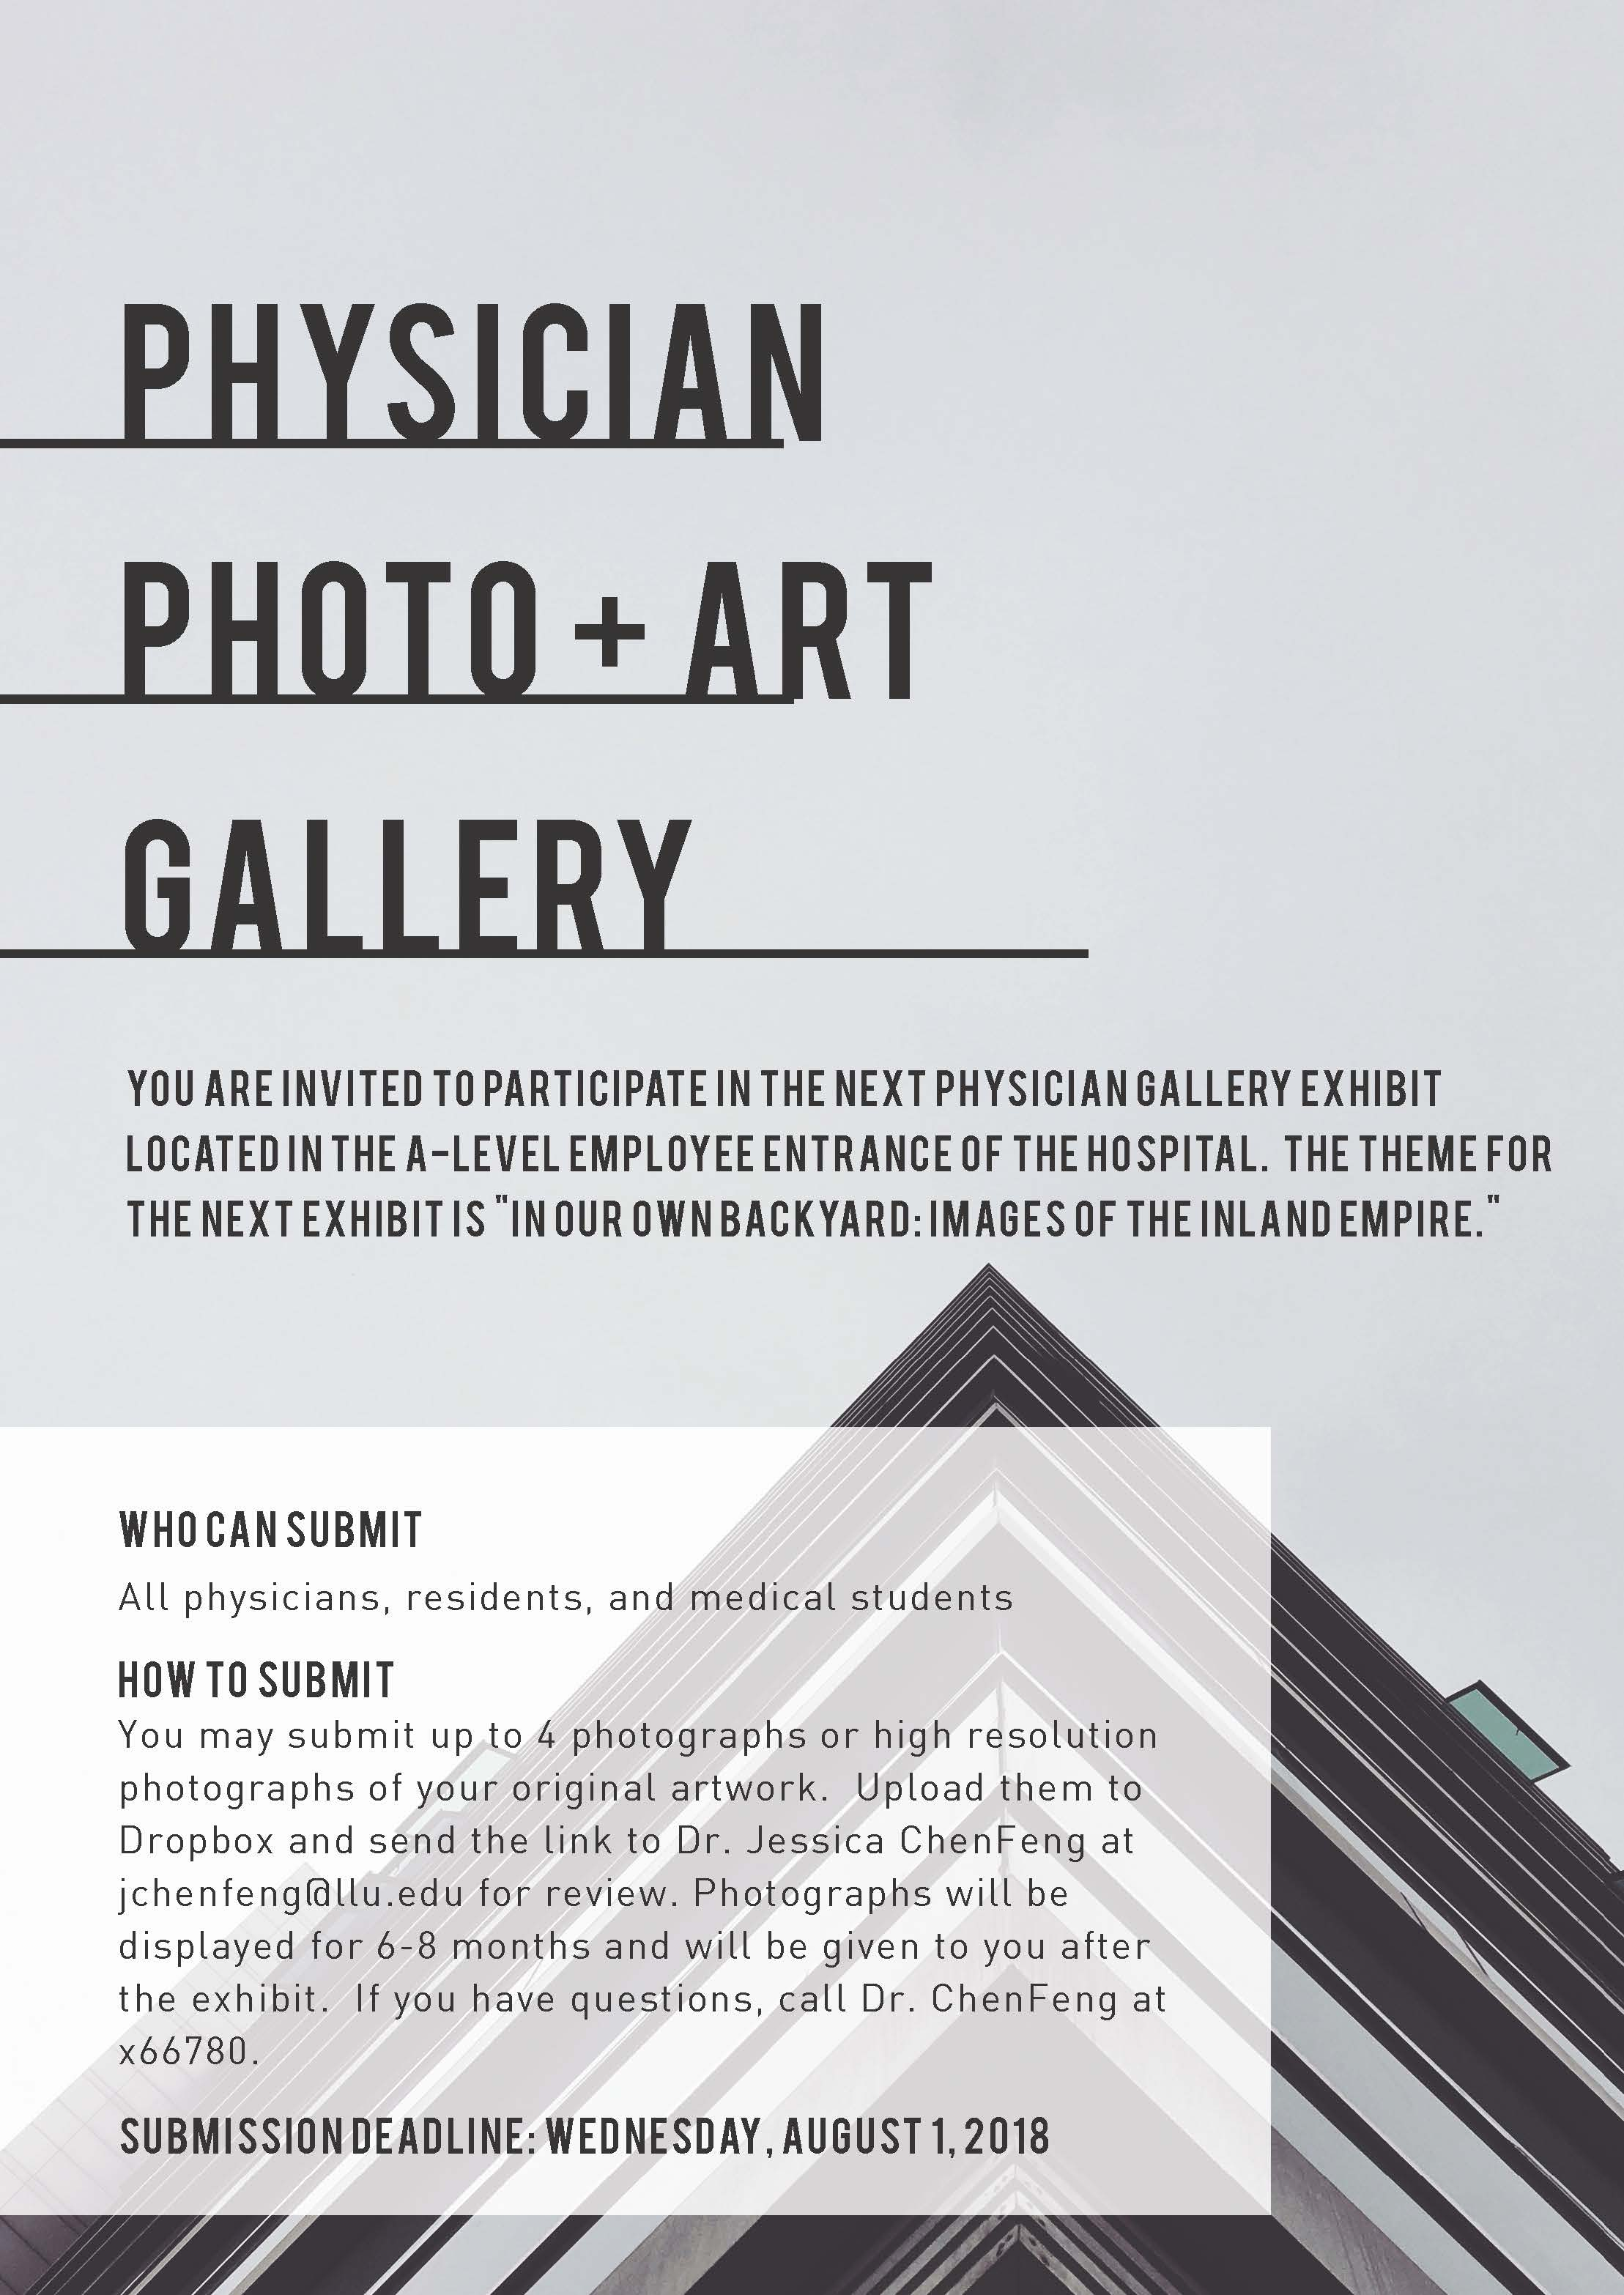 Physician Photo + Art Gallery